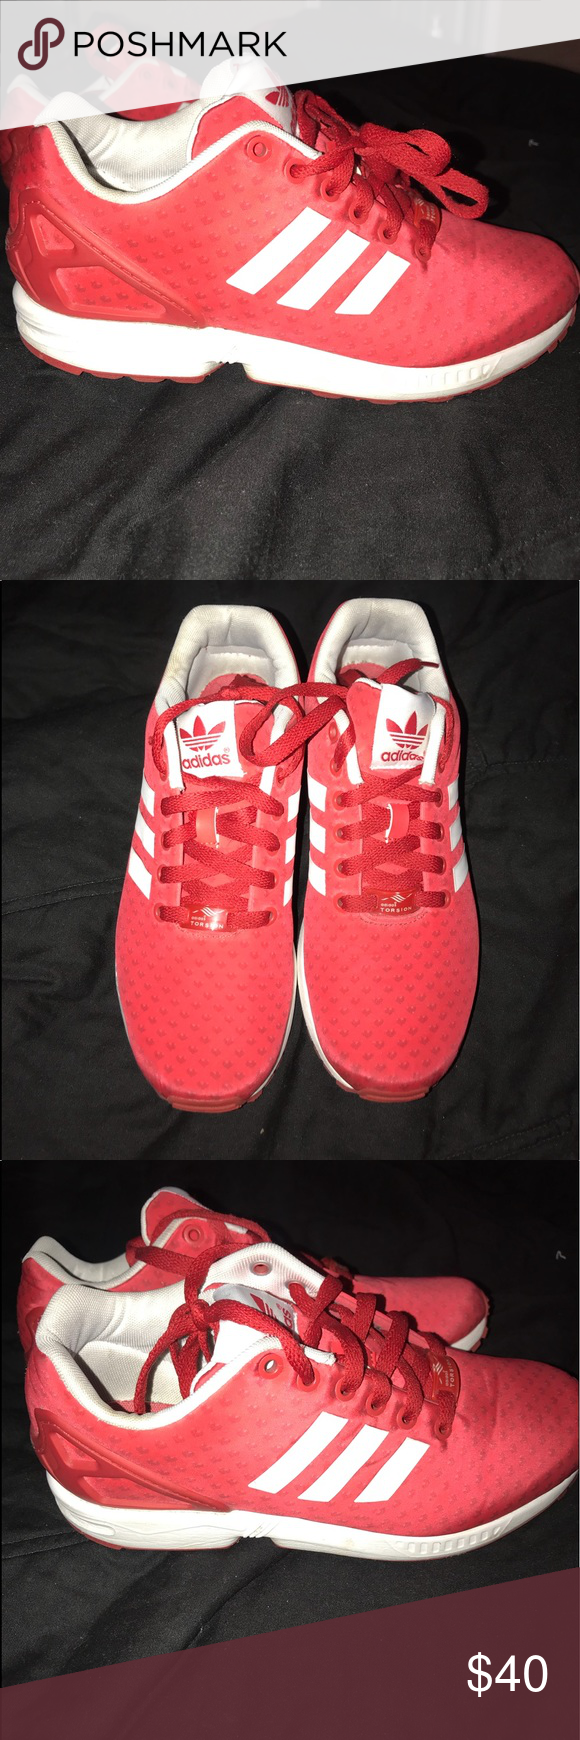 Red adidas ZX flux shoes. Worn